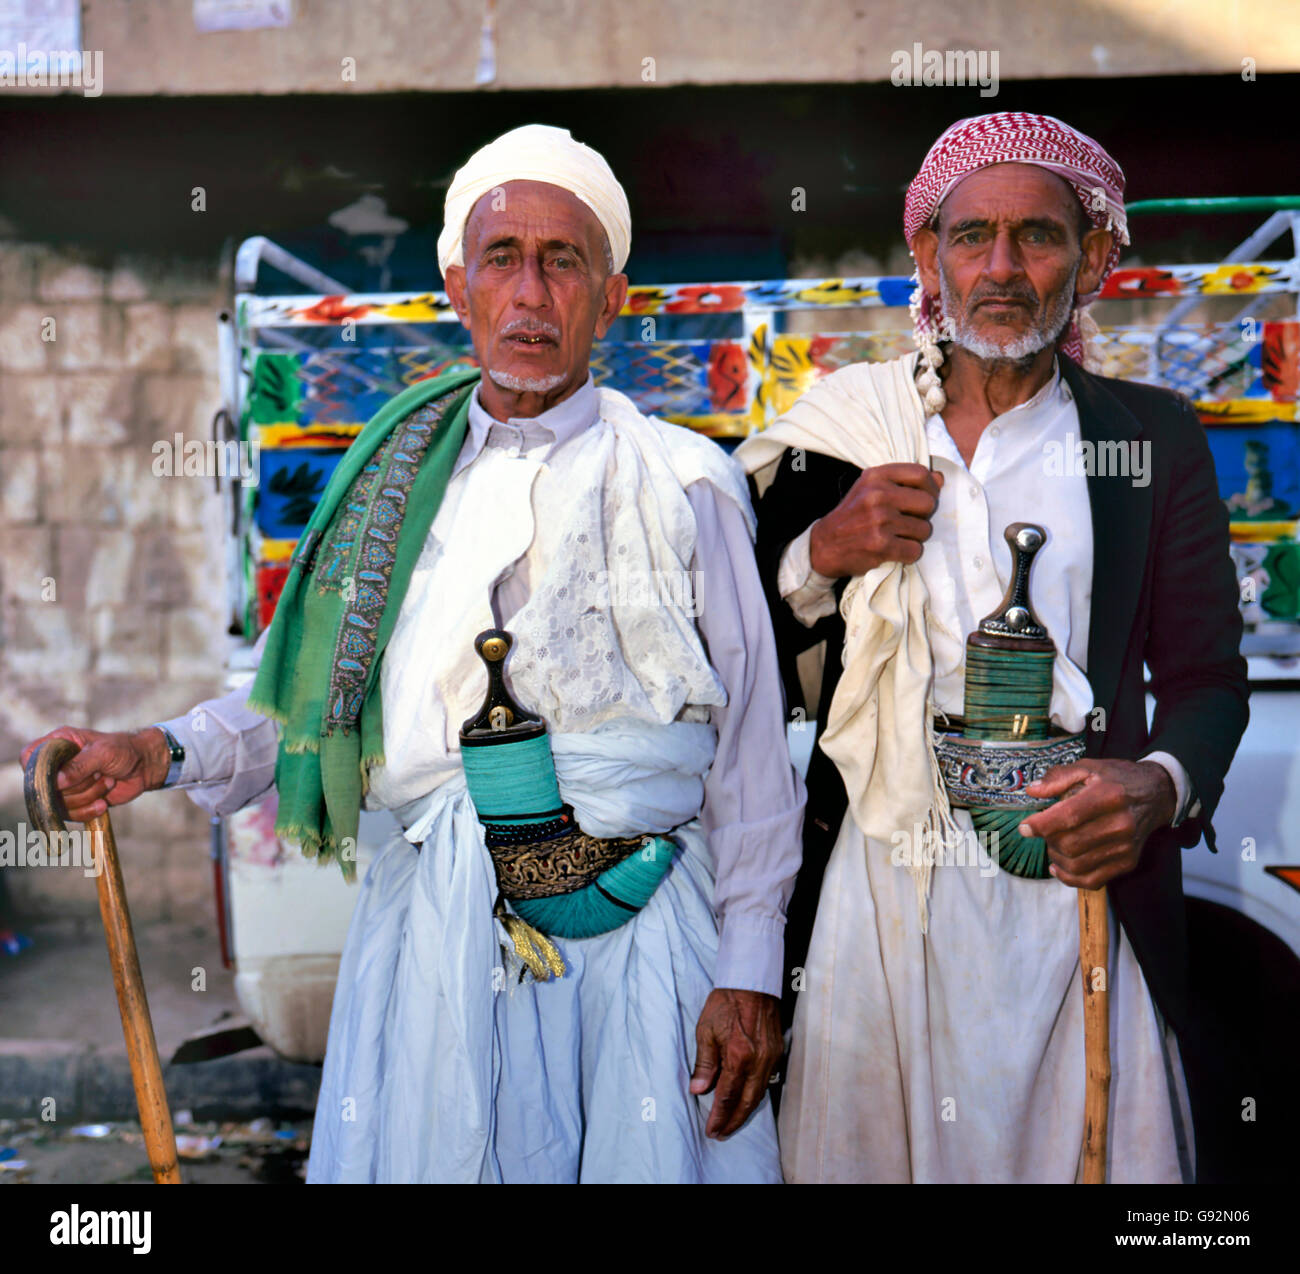 Hababah,Yemen- April 23, 2011; Two men with the traditional jambiya. April 23, 2011 Hababah - Stock Image